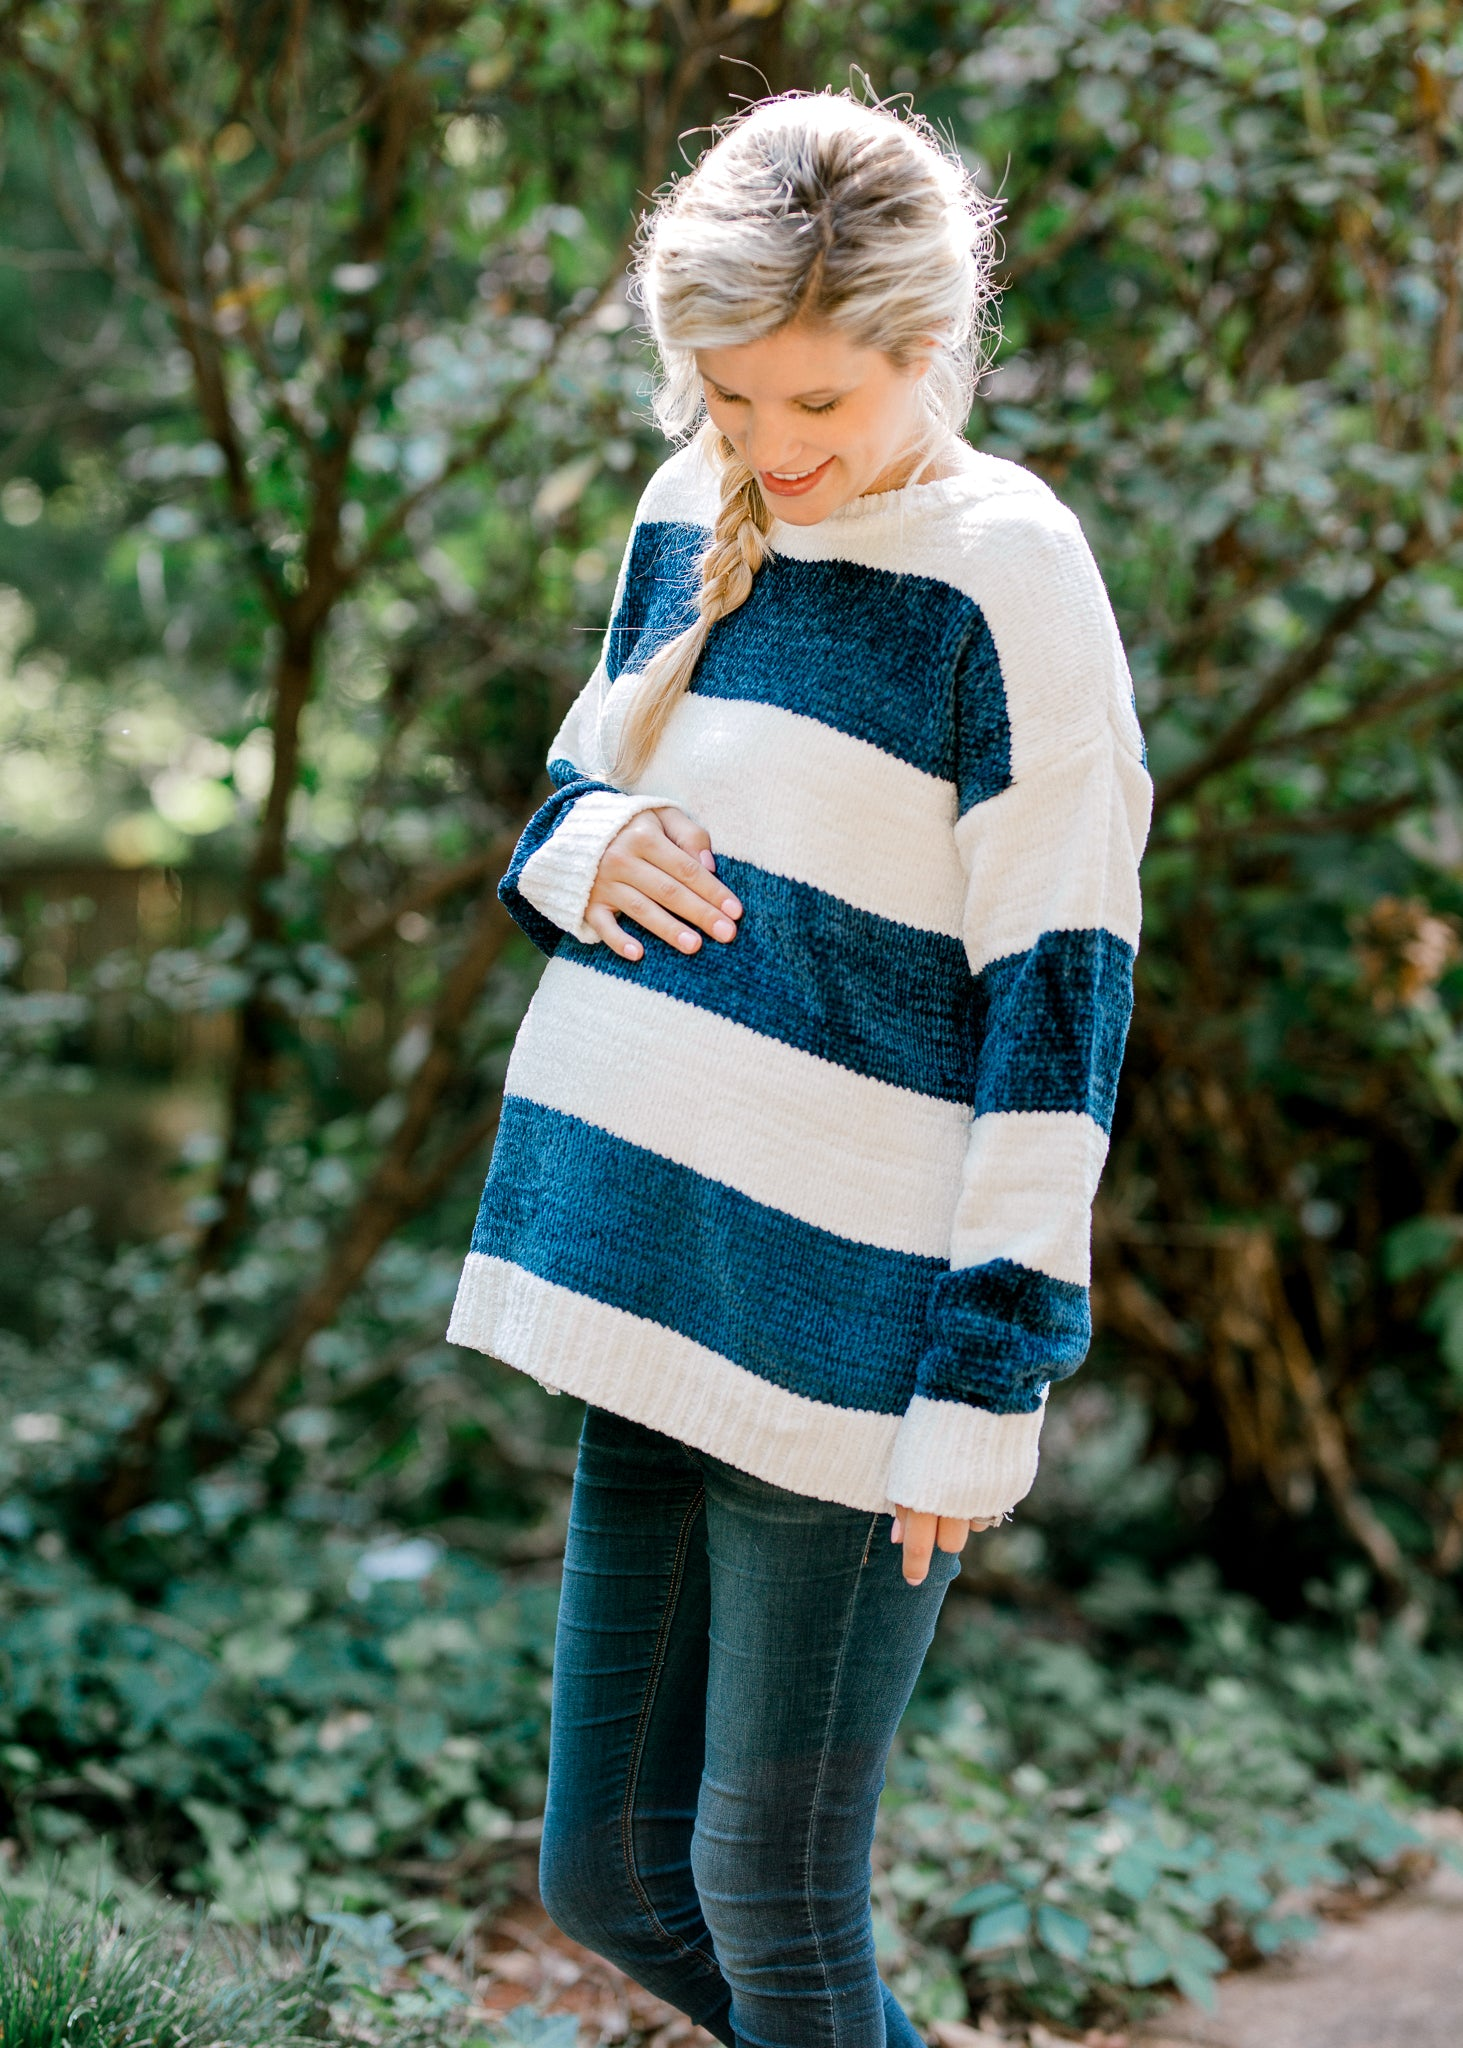 Navy and White Striped Sweater for the Bump